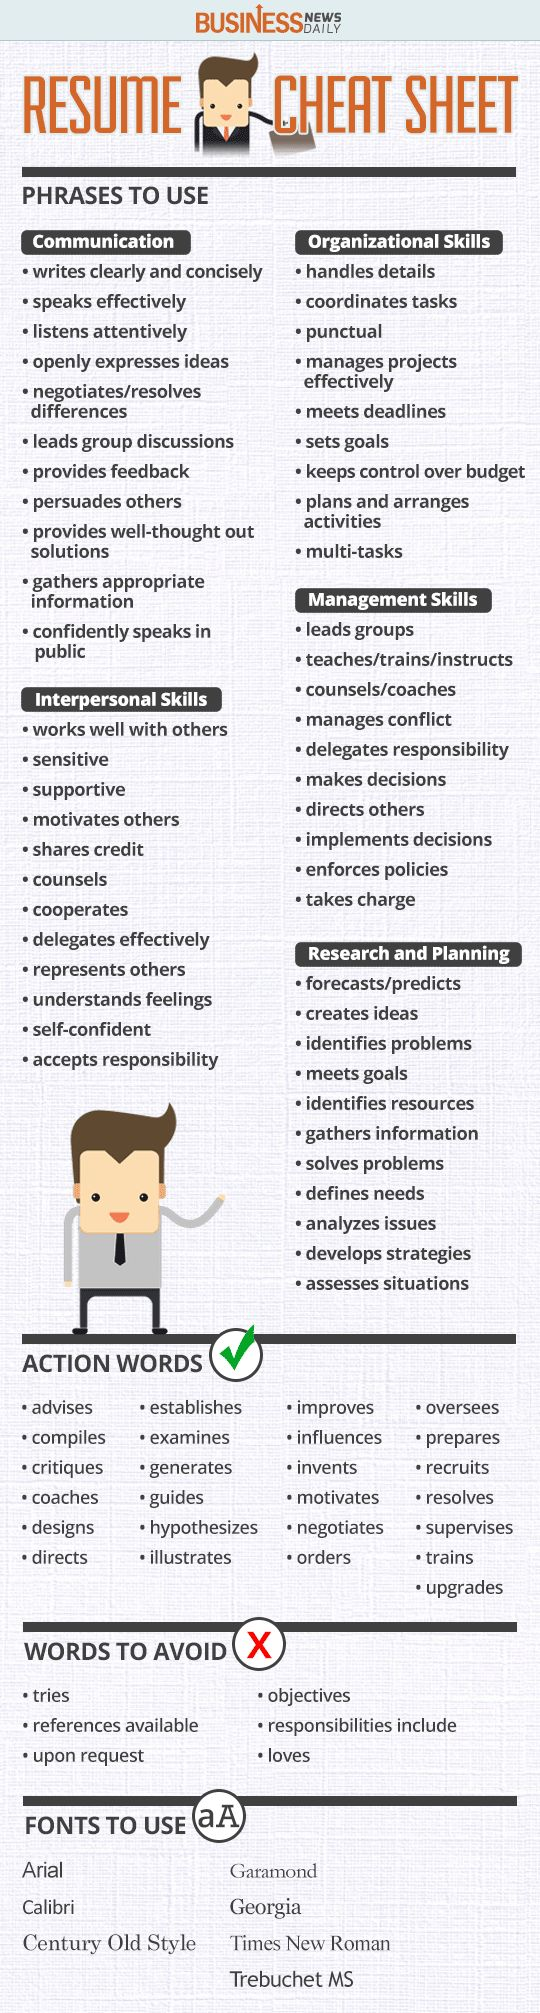 Opposenewapstandardsus  Prepossessing  Ideas About Resume On Pinterest  Cv Format Resume Cv And  With Fascinating Resume Cheat Sheet Infographic Andrews Almost Done With A Complete Unit On Employment Which With Beautiful Resume Image Also How To Make Resumes In Addition Cheap Resumes And Ui Designer Resume As Well As Sales Coordinator Resume Additionally Manager Resume Skills From Pinterestcom With Opposenewapstandardsus  Fascinating  Ideas About Resume On Pinterest  Cv Format Resume Cv And  With Beautiful Resume Cheat Sheet Infographic Andrews Almost Done With A Complete Unit On Employment Which And Prepossessing Resume Image Also How To Make Resumes In Addition Cheap Resumes From Pinterestcom